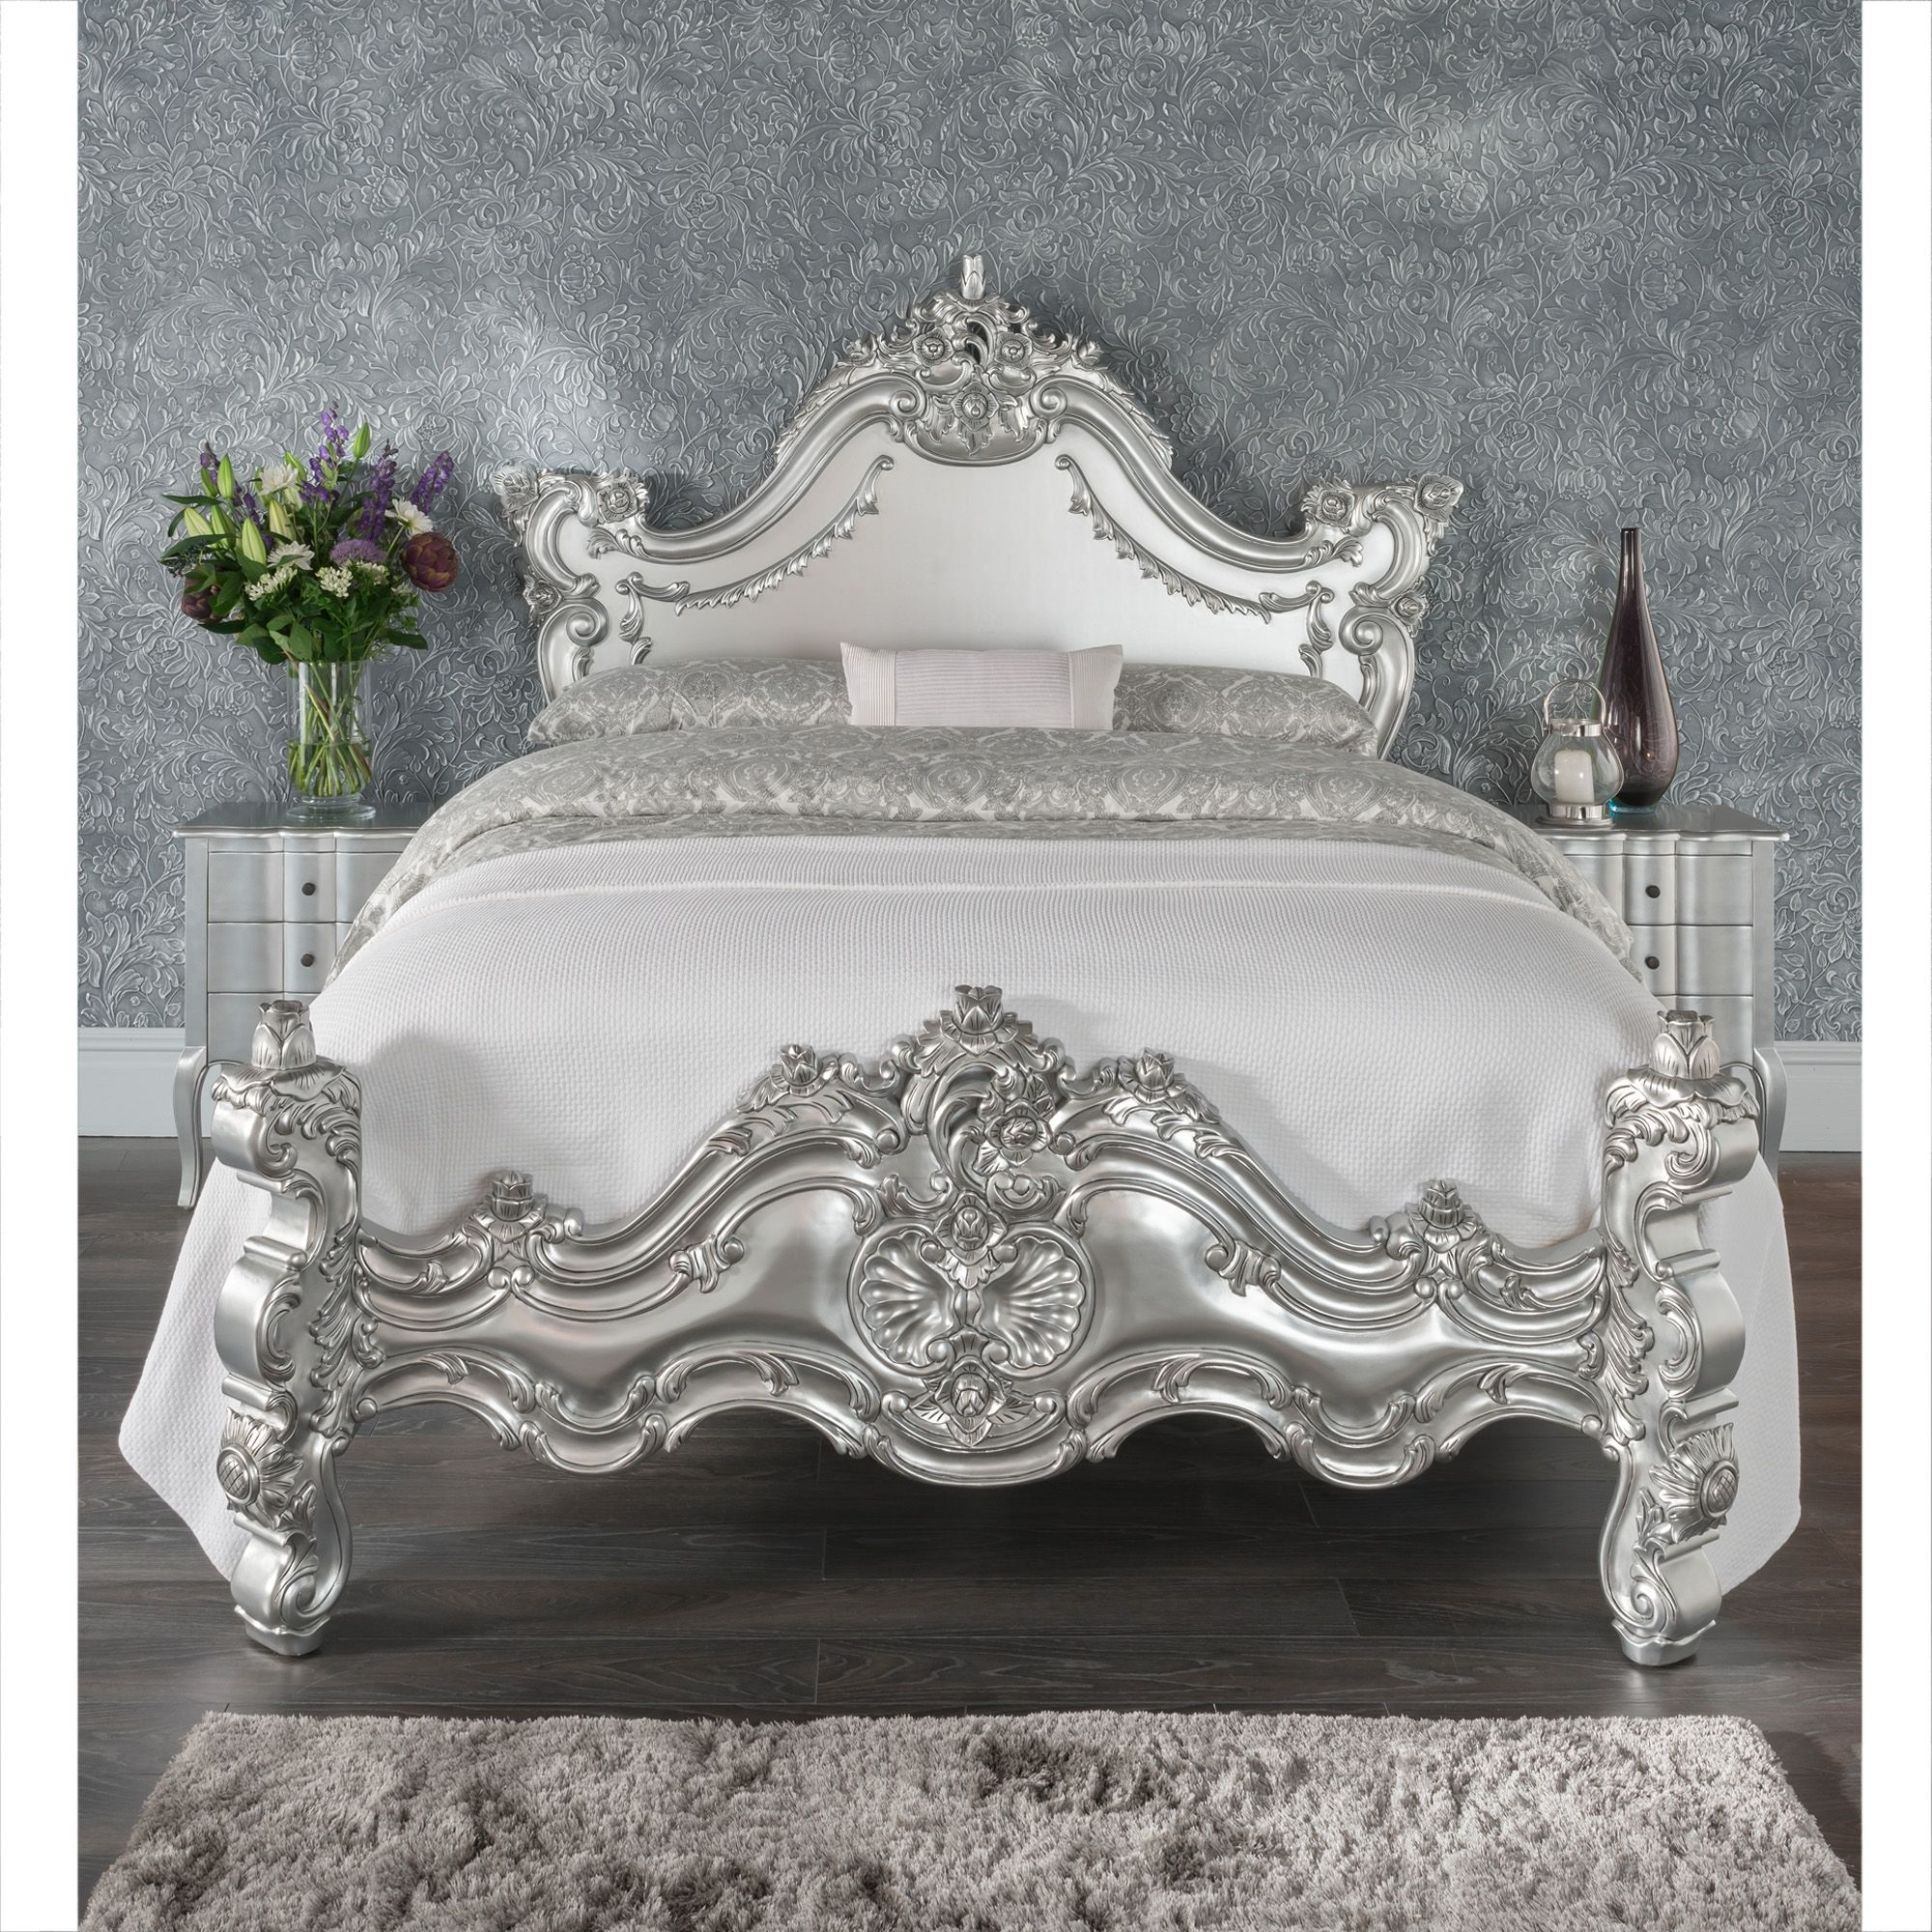 Silver Shabby Chic Bedroom Furniture Silver Antique French Style Bed Shabby Chic Bedroom Pixel Dust